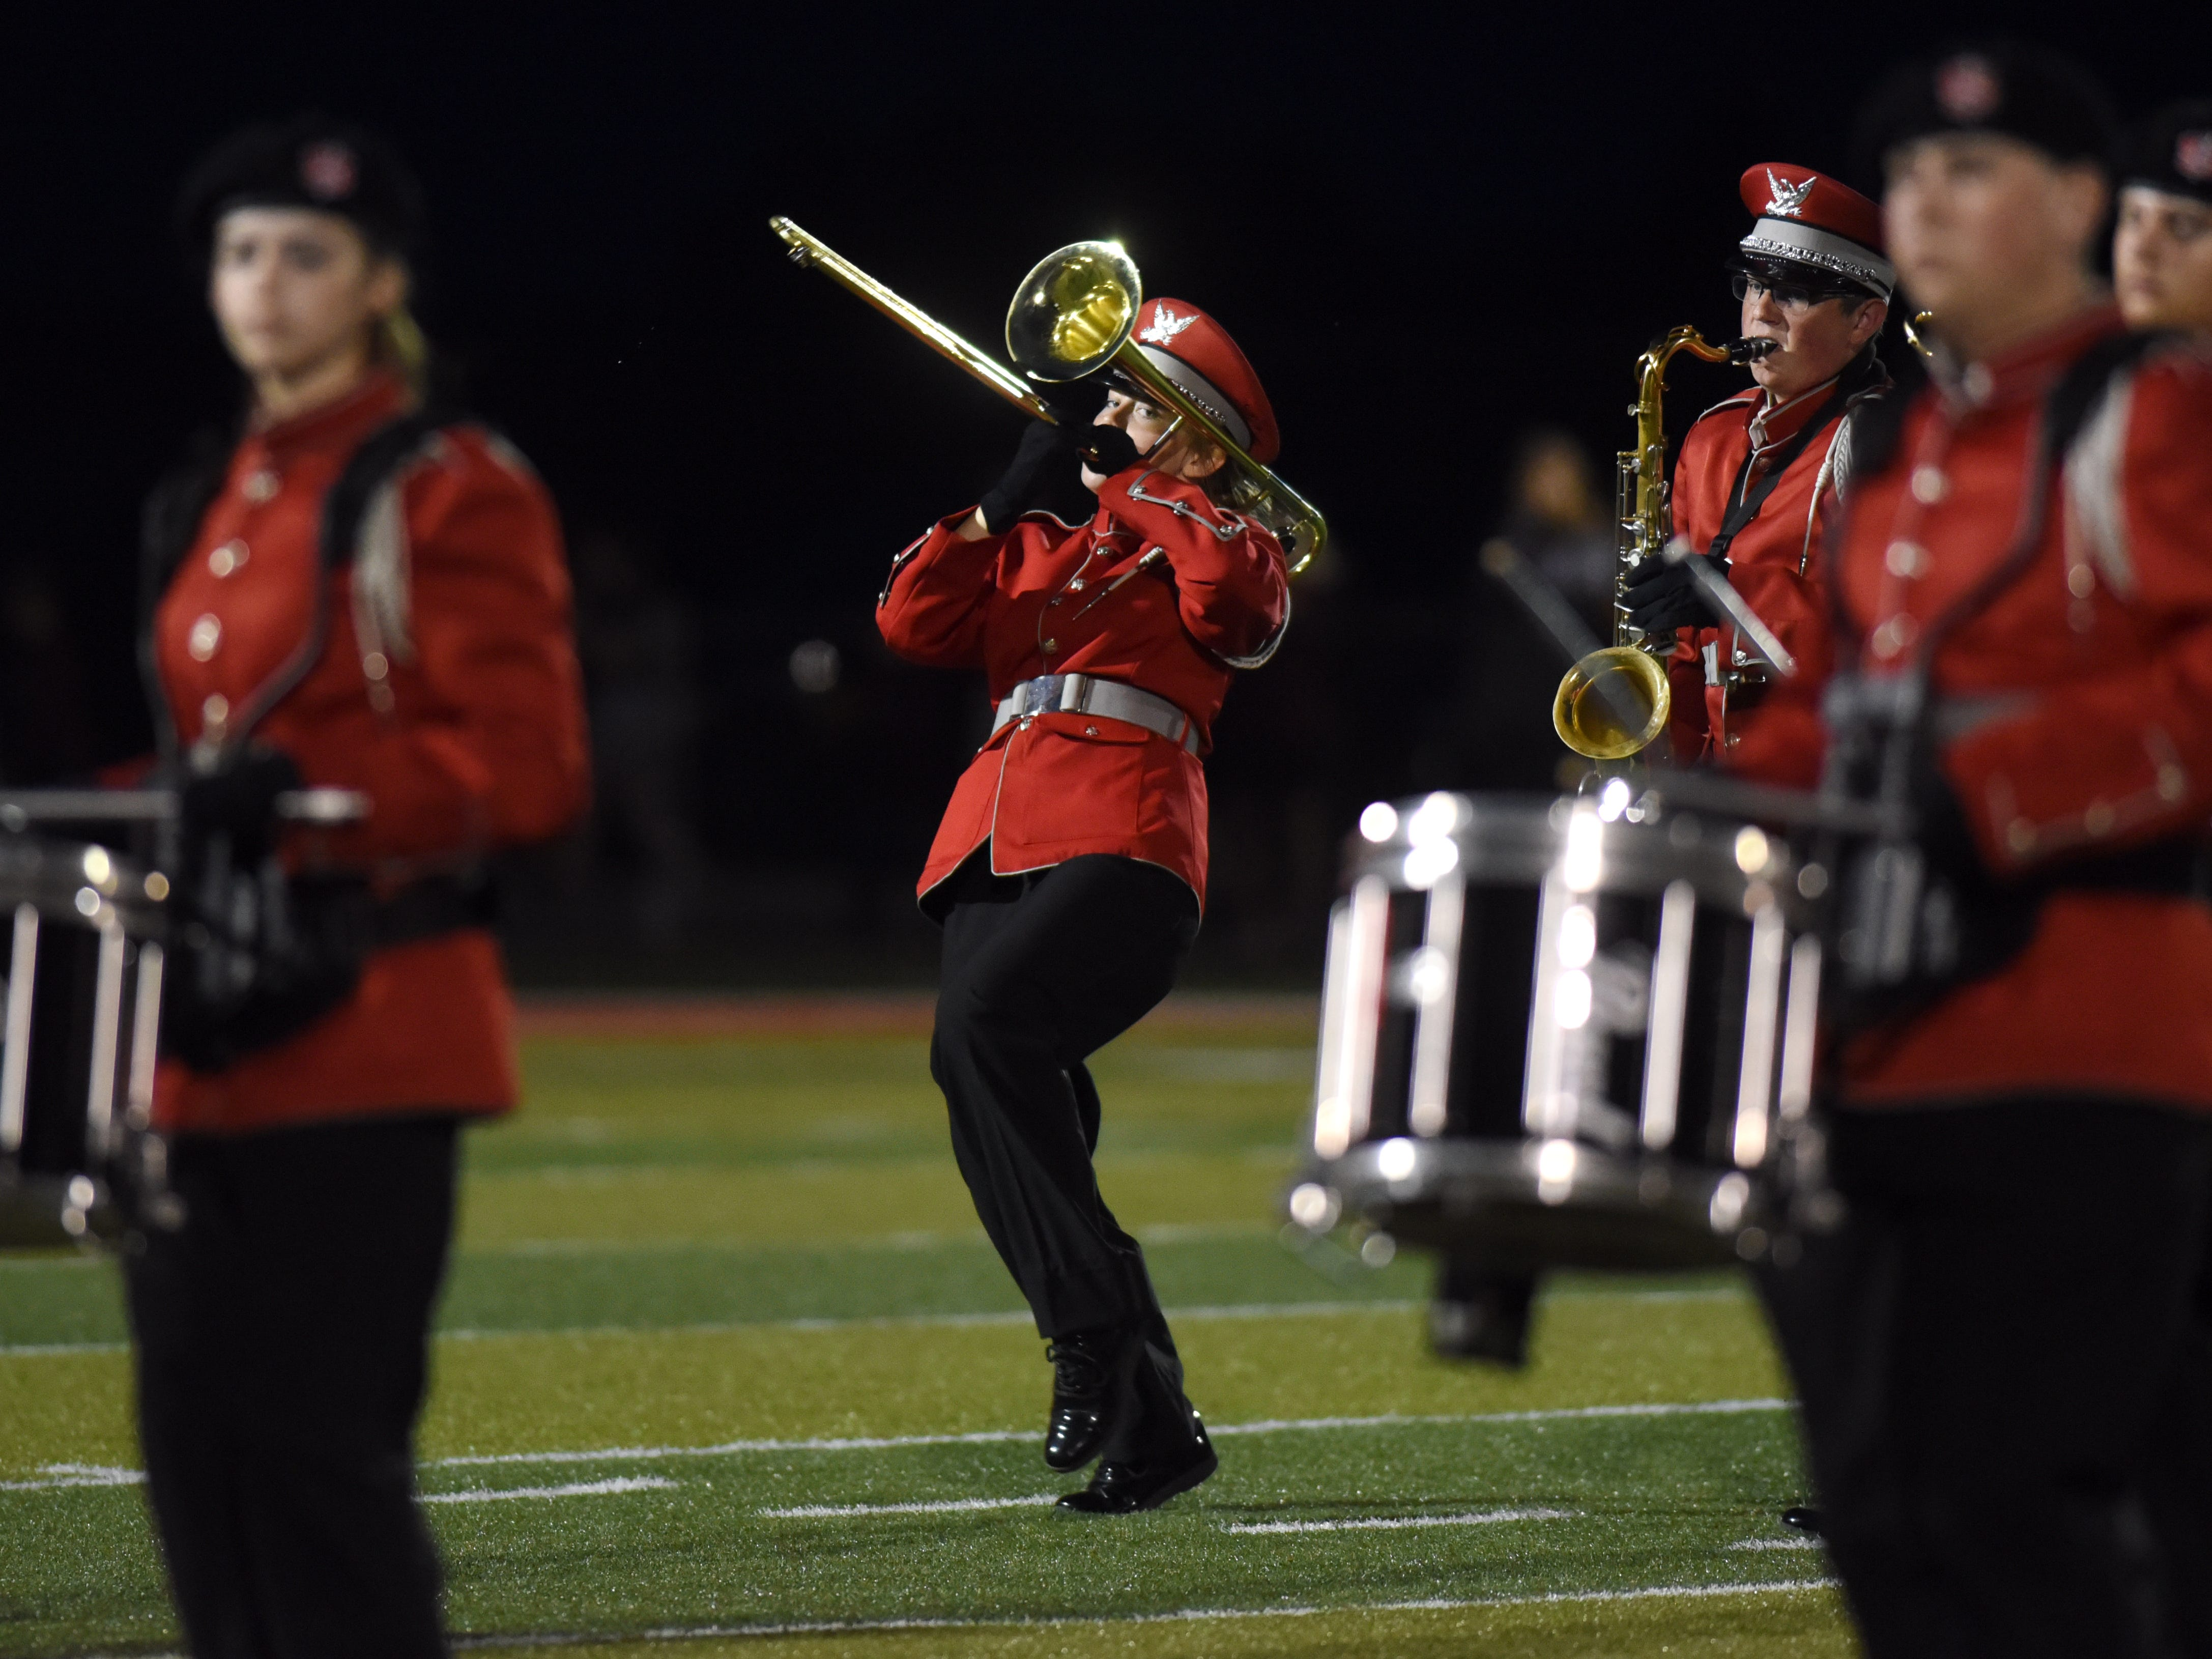 Sheridan's band performs at halftime during its game against John Glenn.